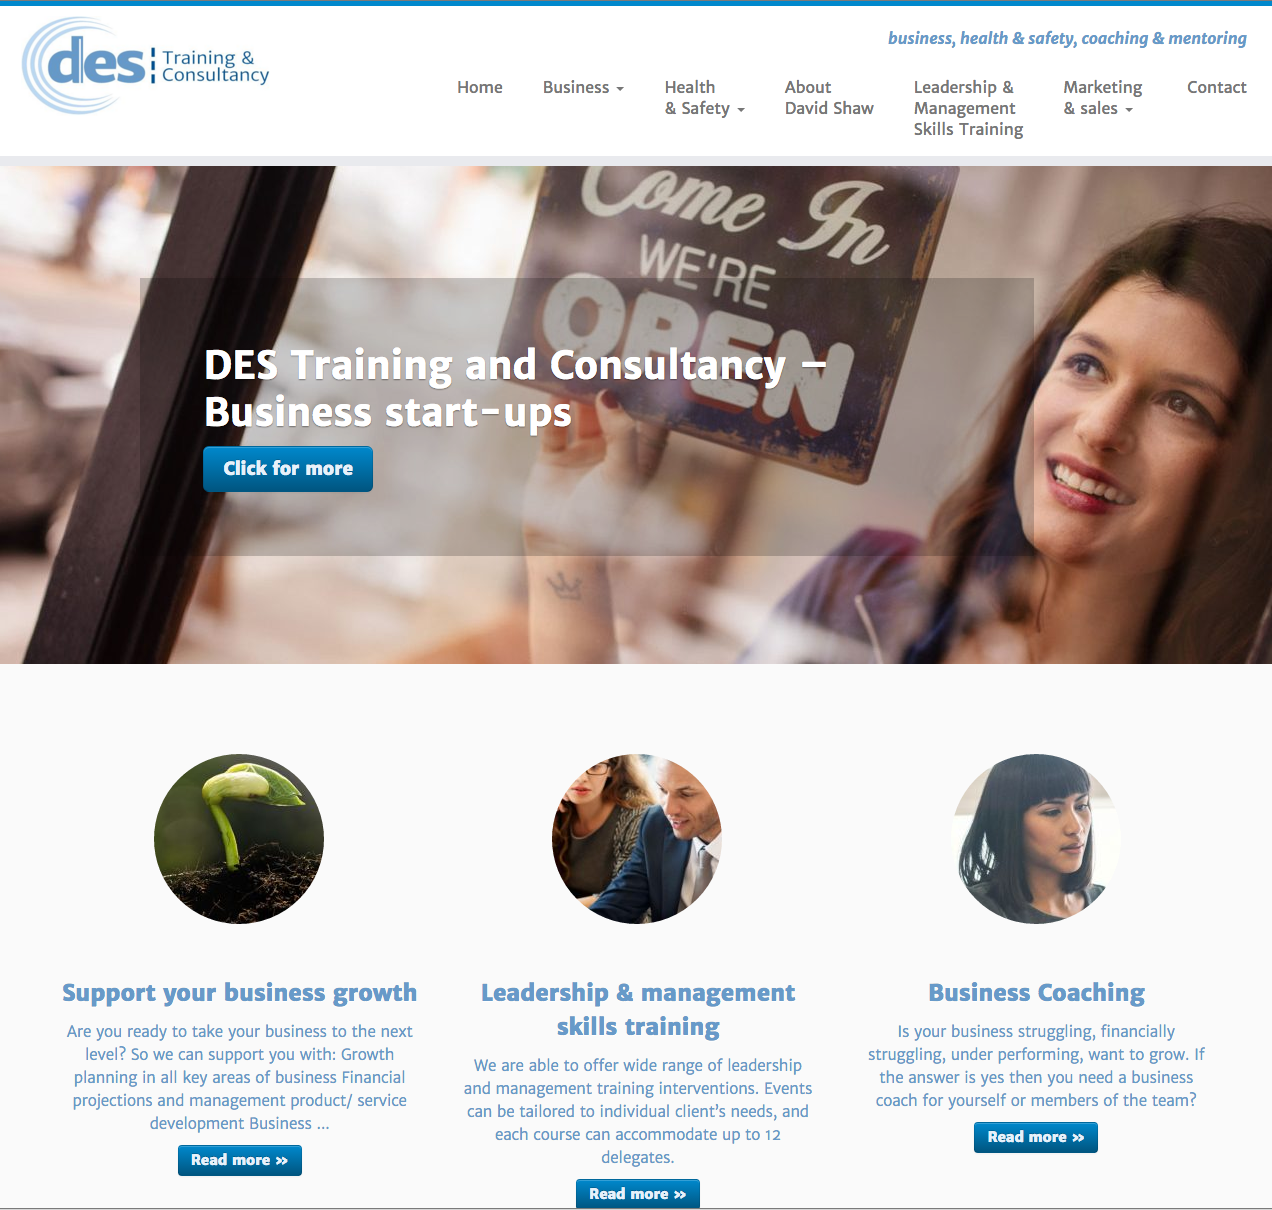 DES Training and Consultancy website design